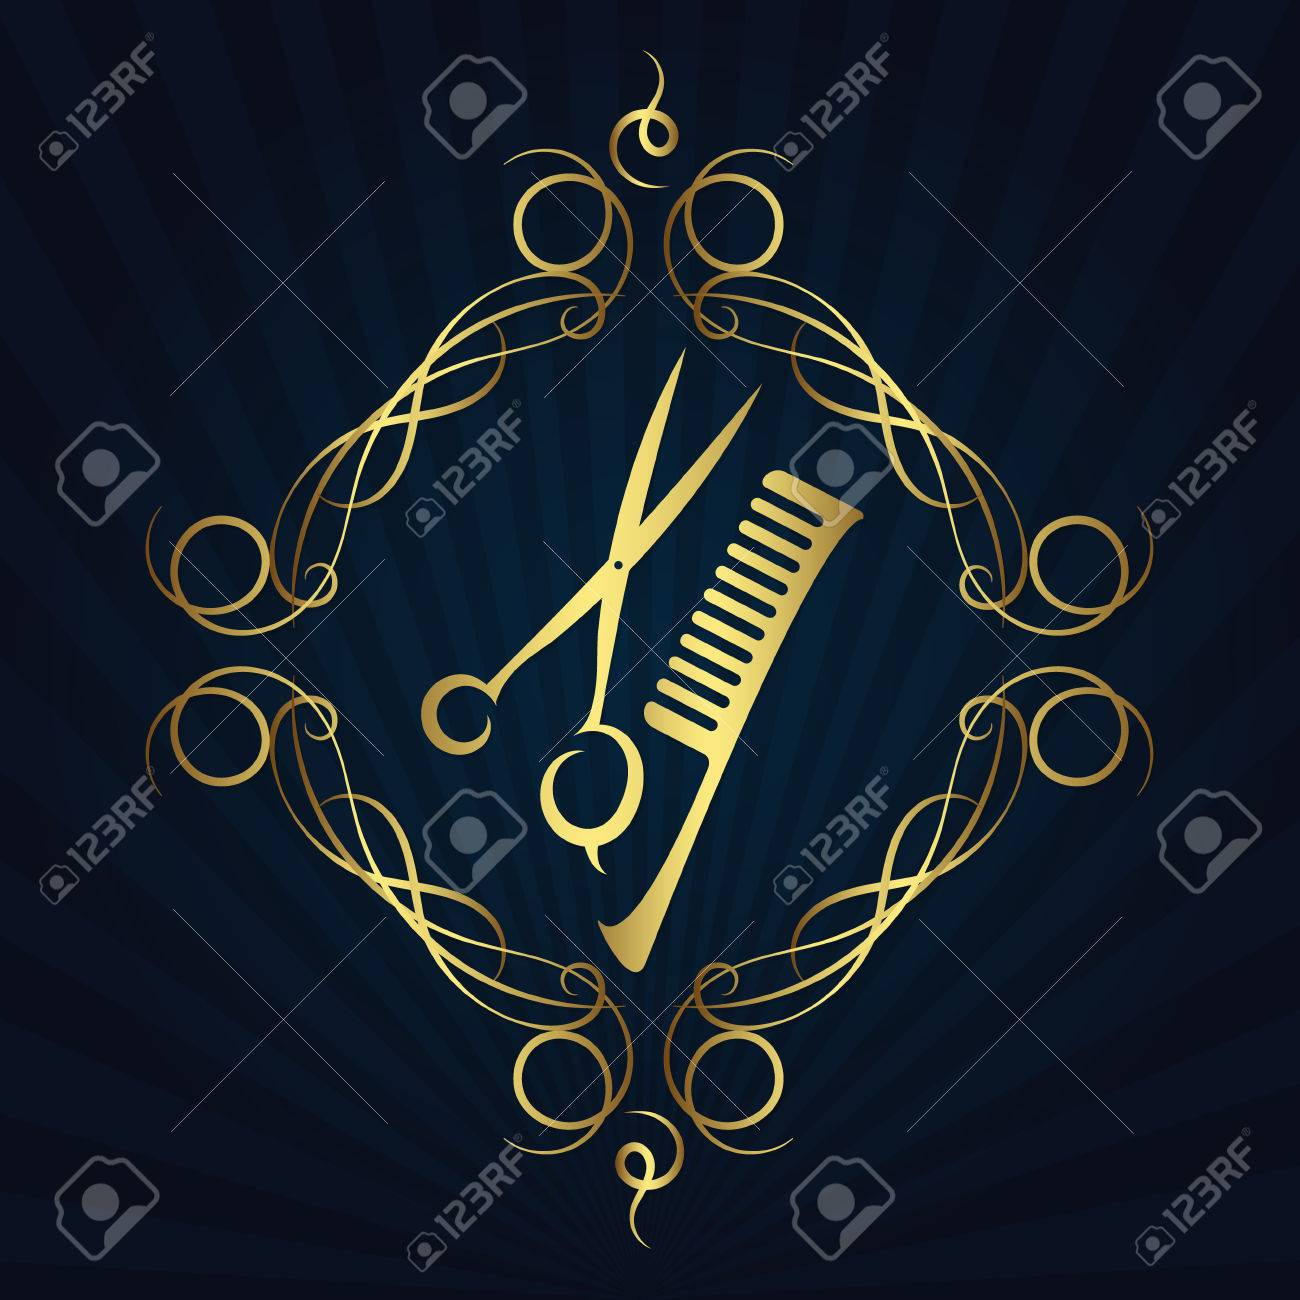 Scissors and hairbrush symbol for the hair and beauty salon scissors and hairbrush symbol for the hair and beauty salon stock vector 72208782 biocorpaavc